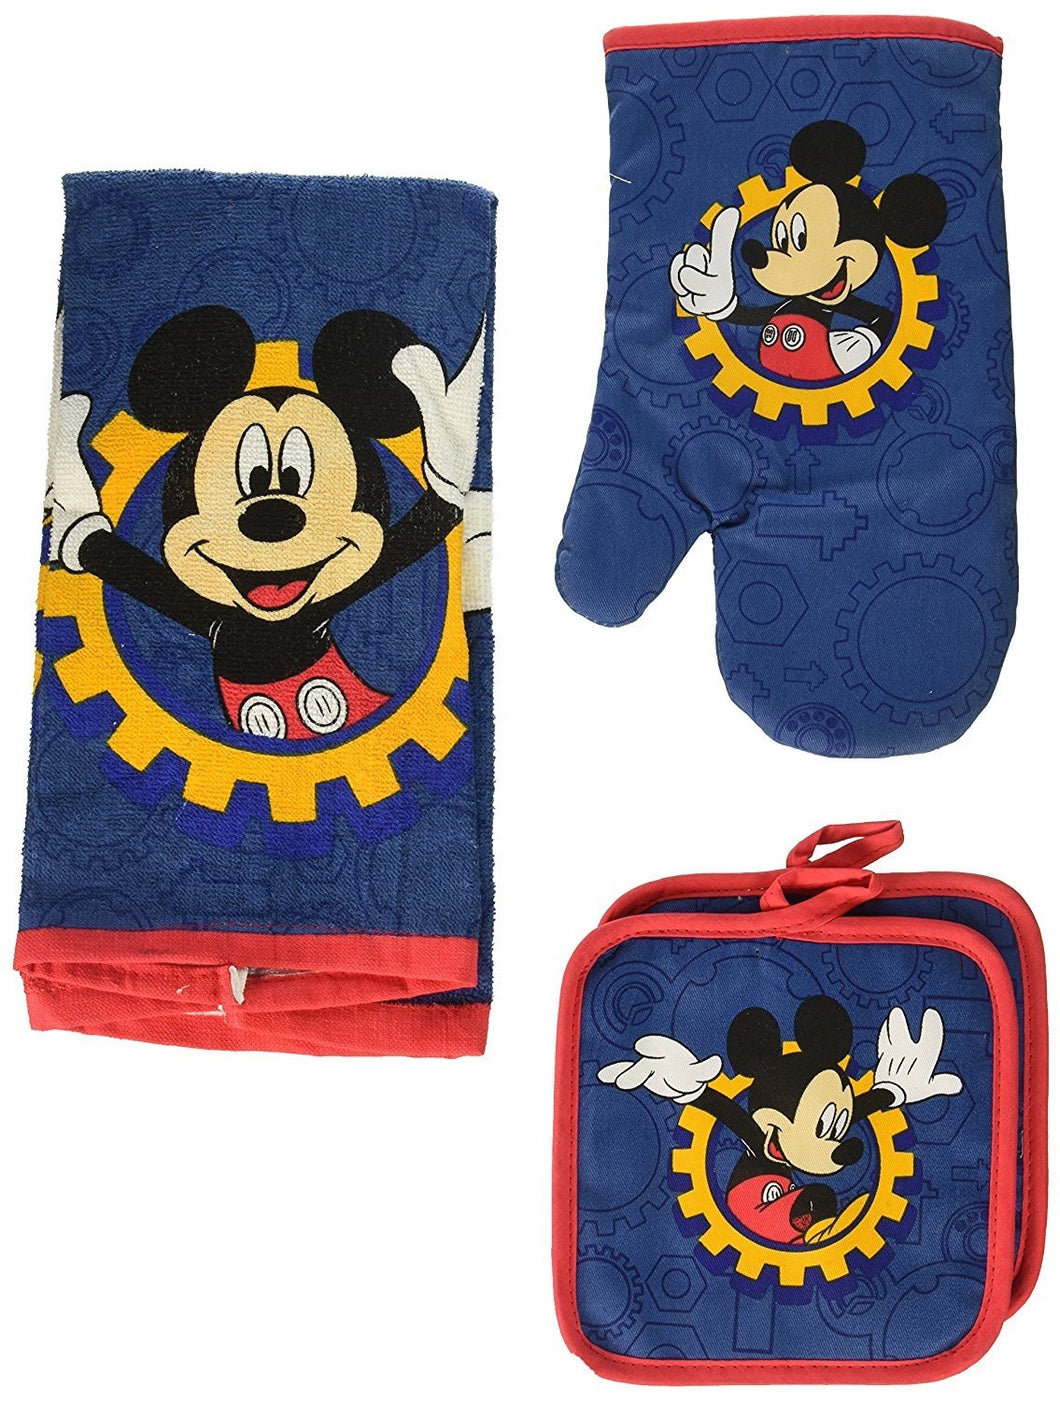 Disney Mickey Mouse Blue Gear 4-pc Kitchen Set: Towel, Oven Mitt & 2 Pot Holders